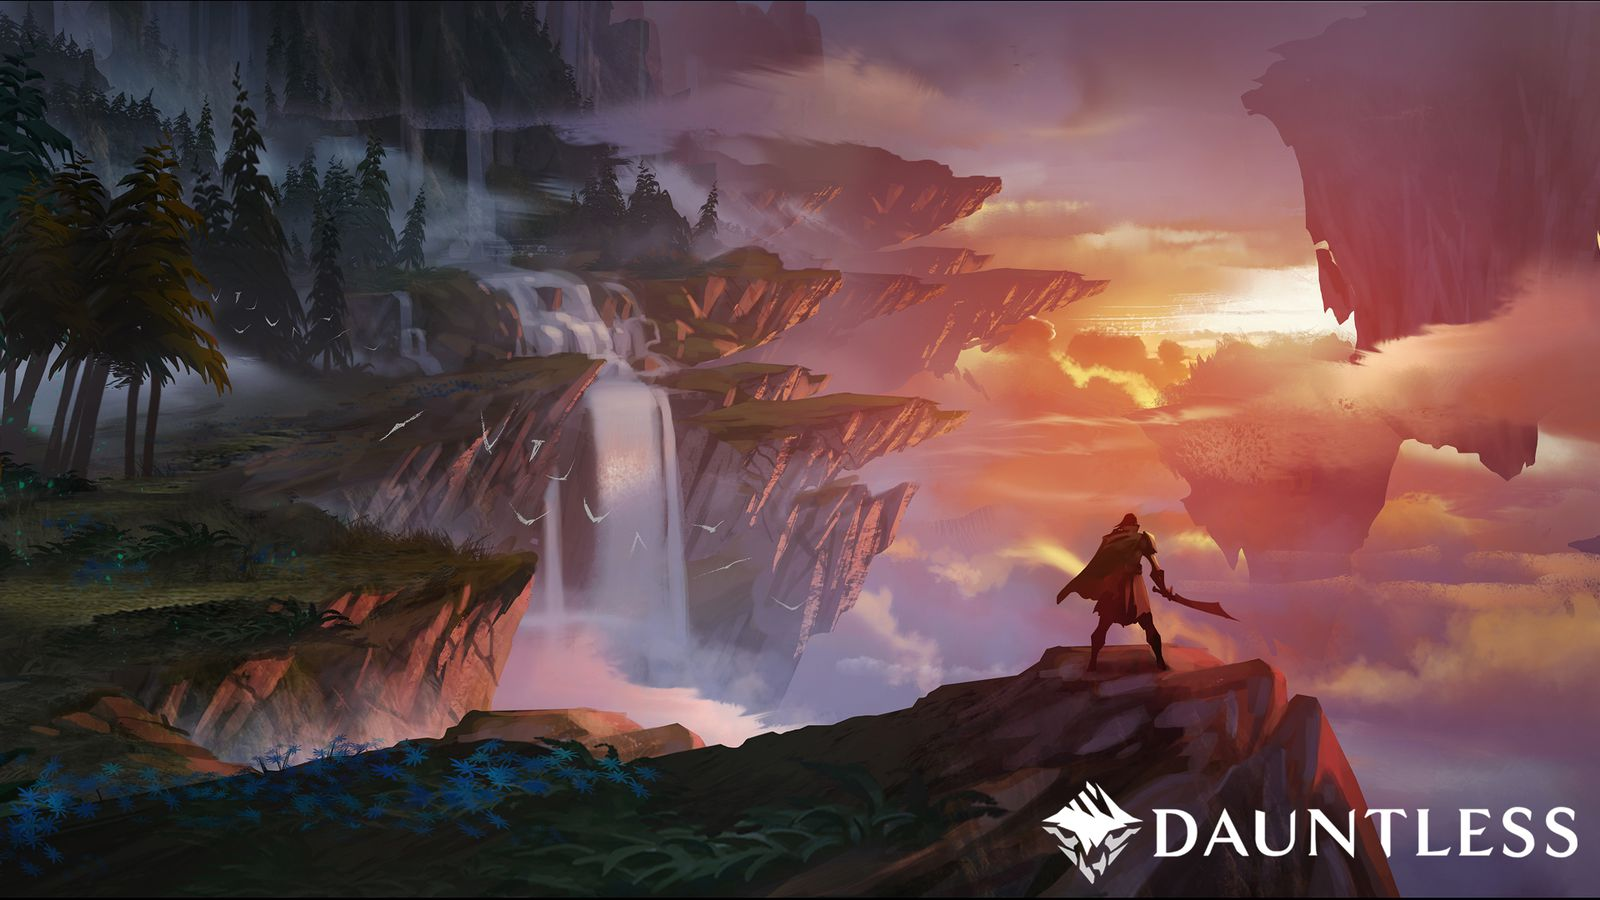 This is Dauntless, a co-op fantasy RPG from ex-BioWare vets